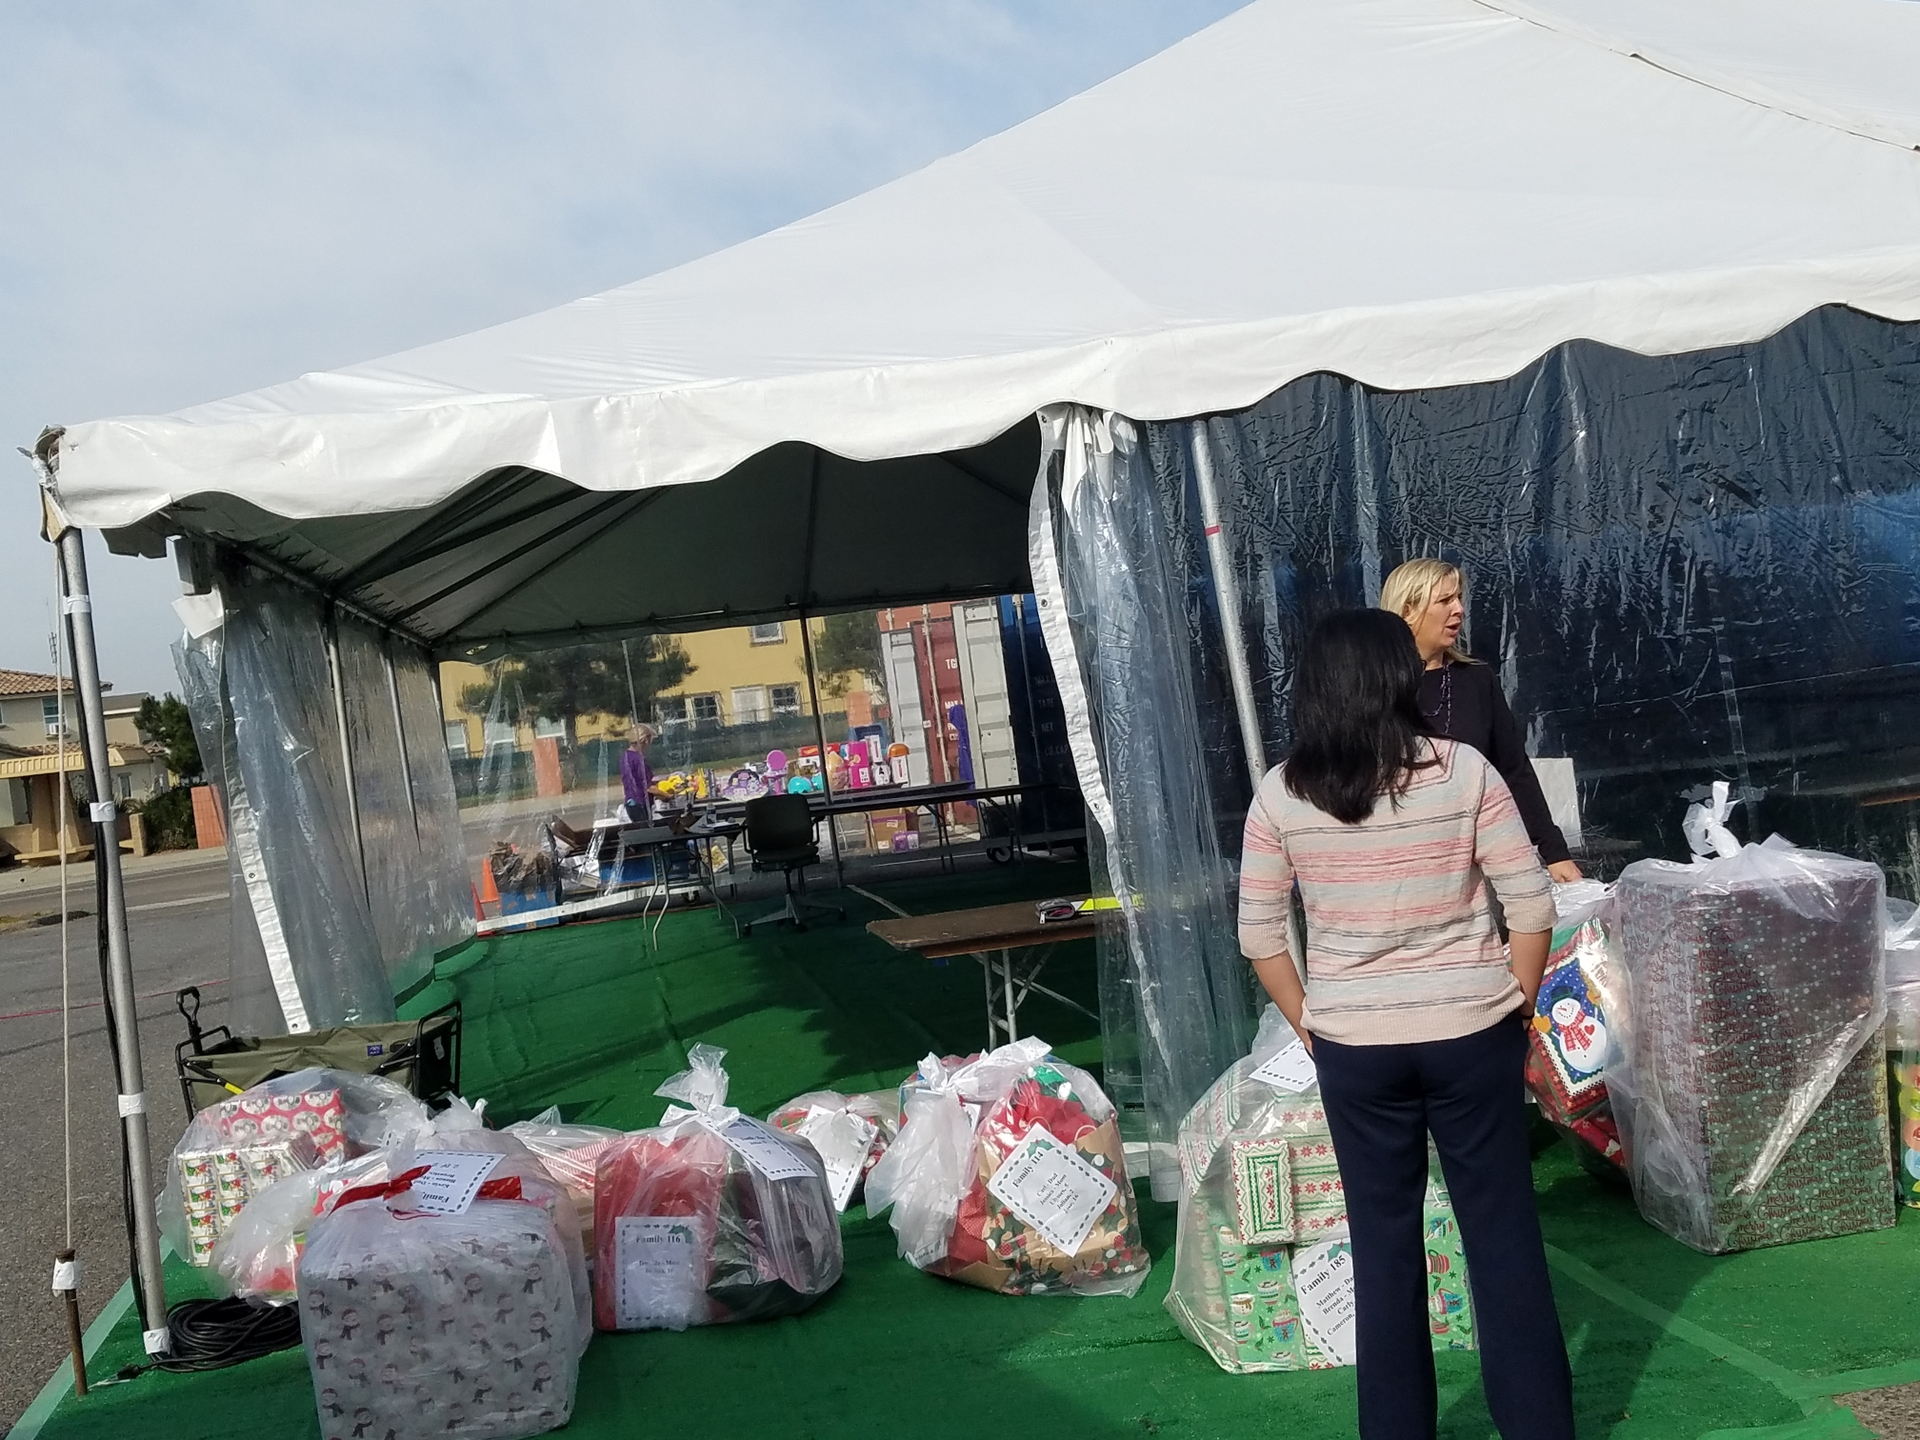 Christmas gifts from SCE employees are lined up at Camp Pendleton.